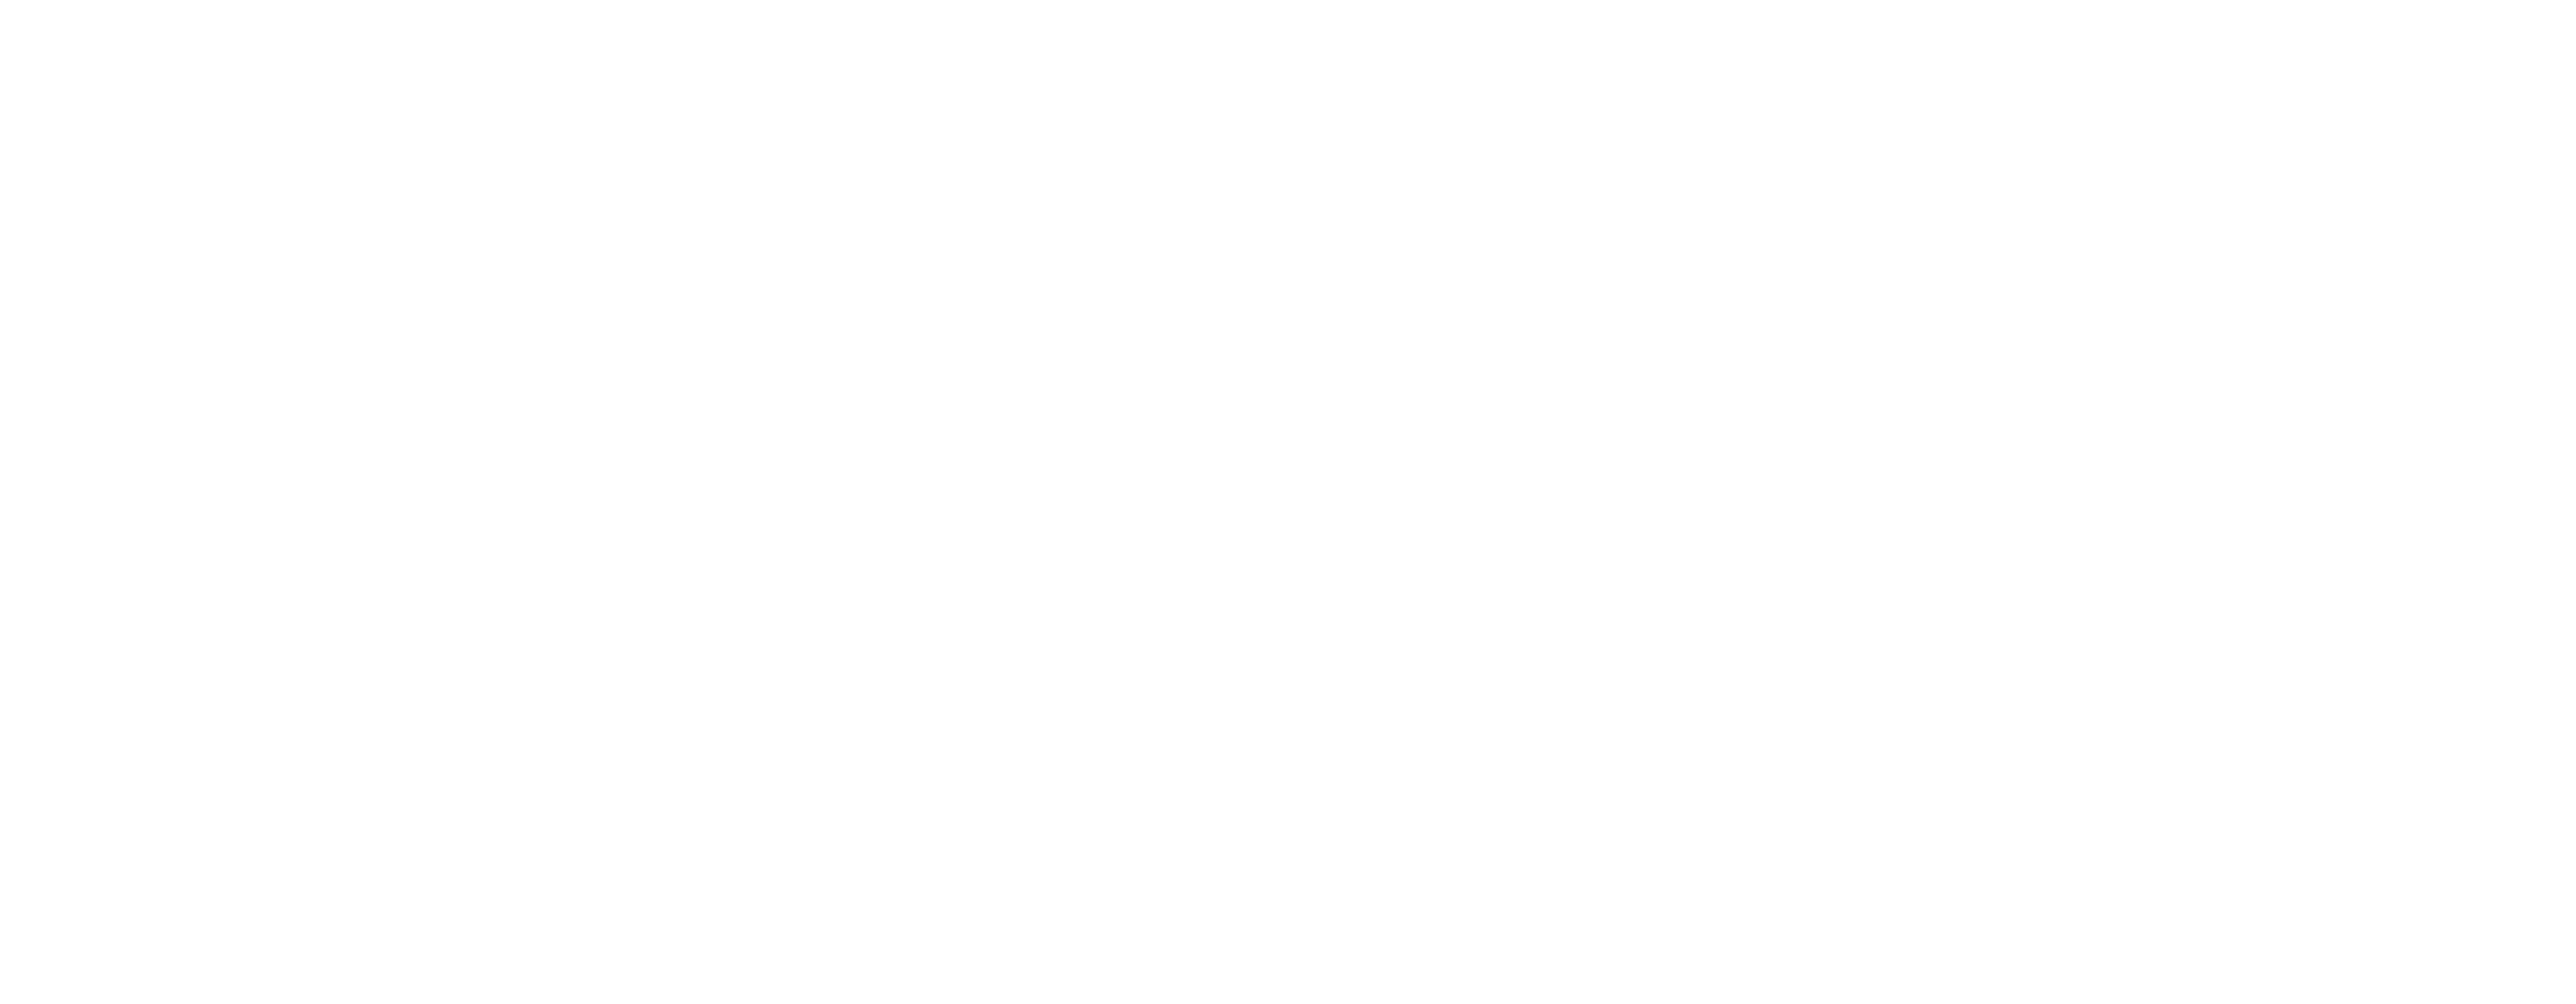 Valley Girl Hair Co